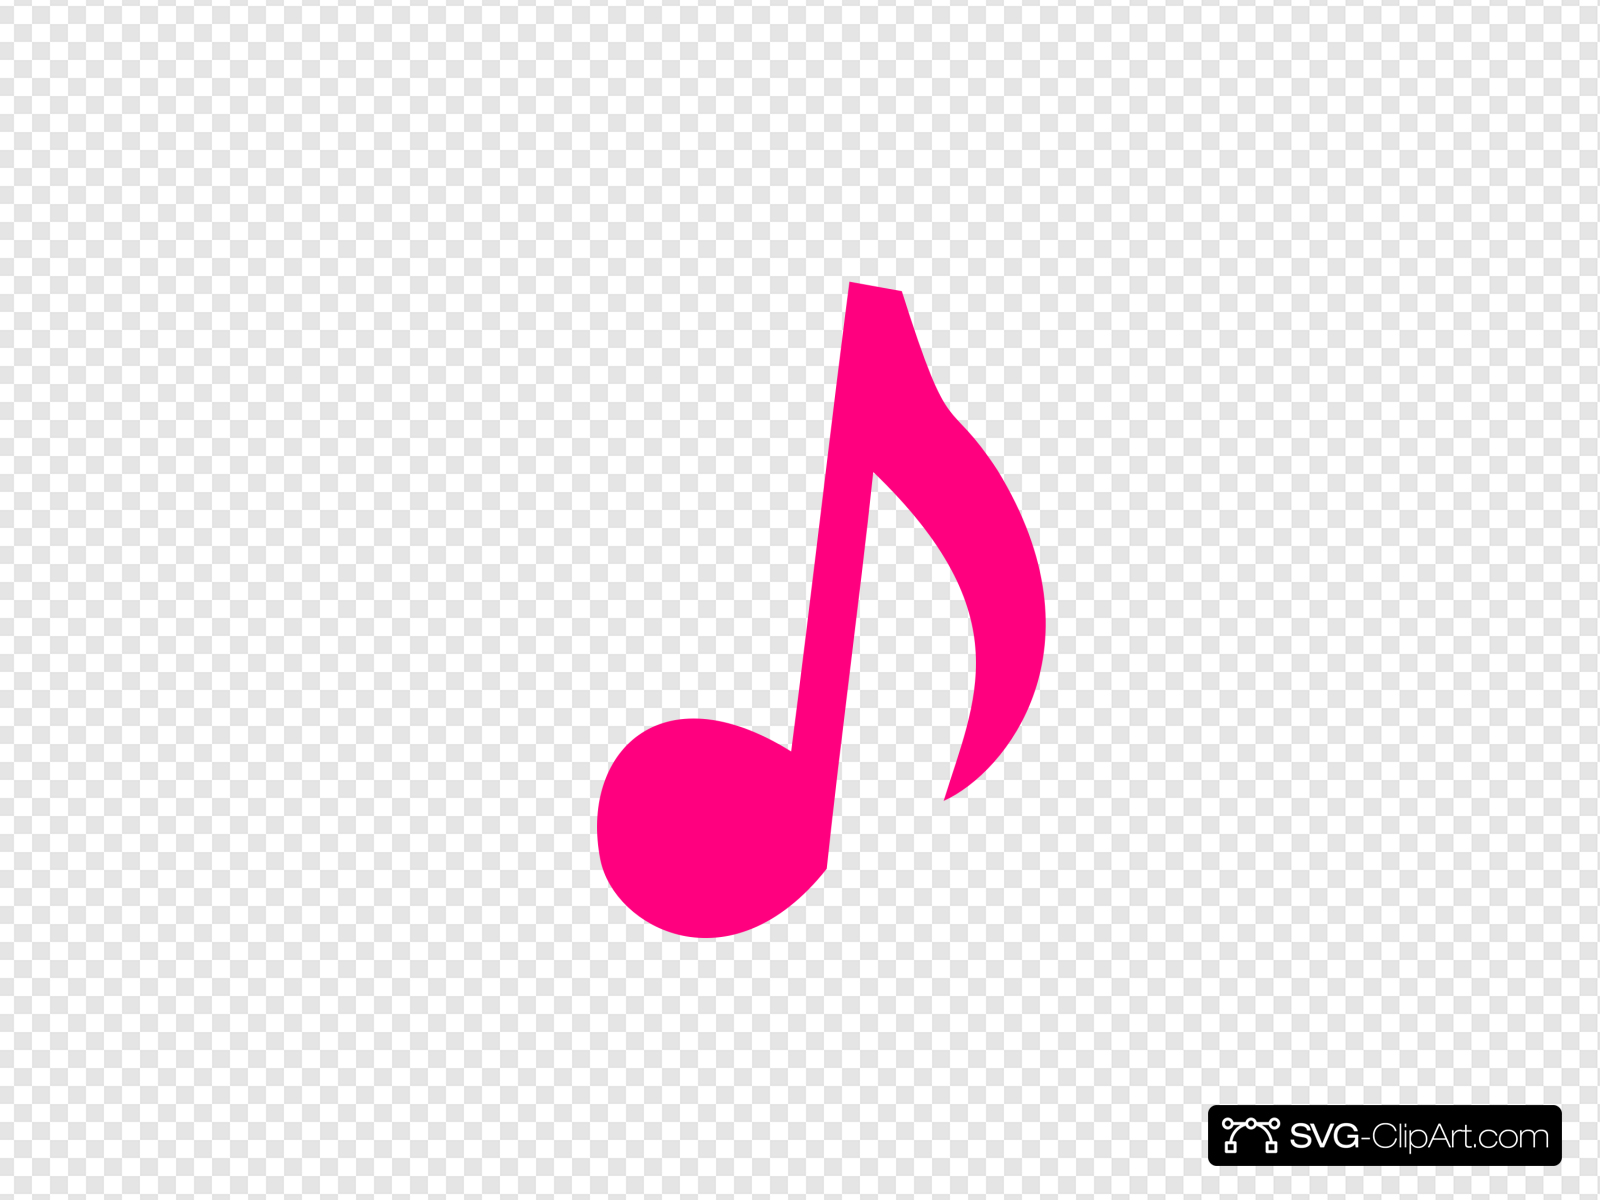 Pink Music Note Clip art, Icon and SVG.